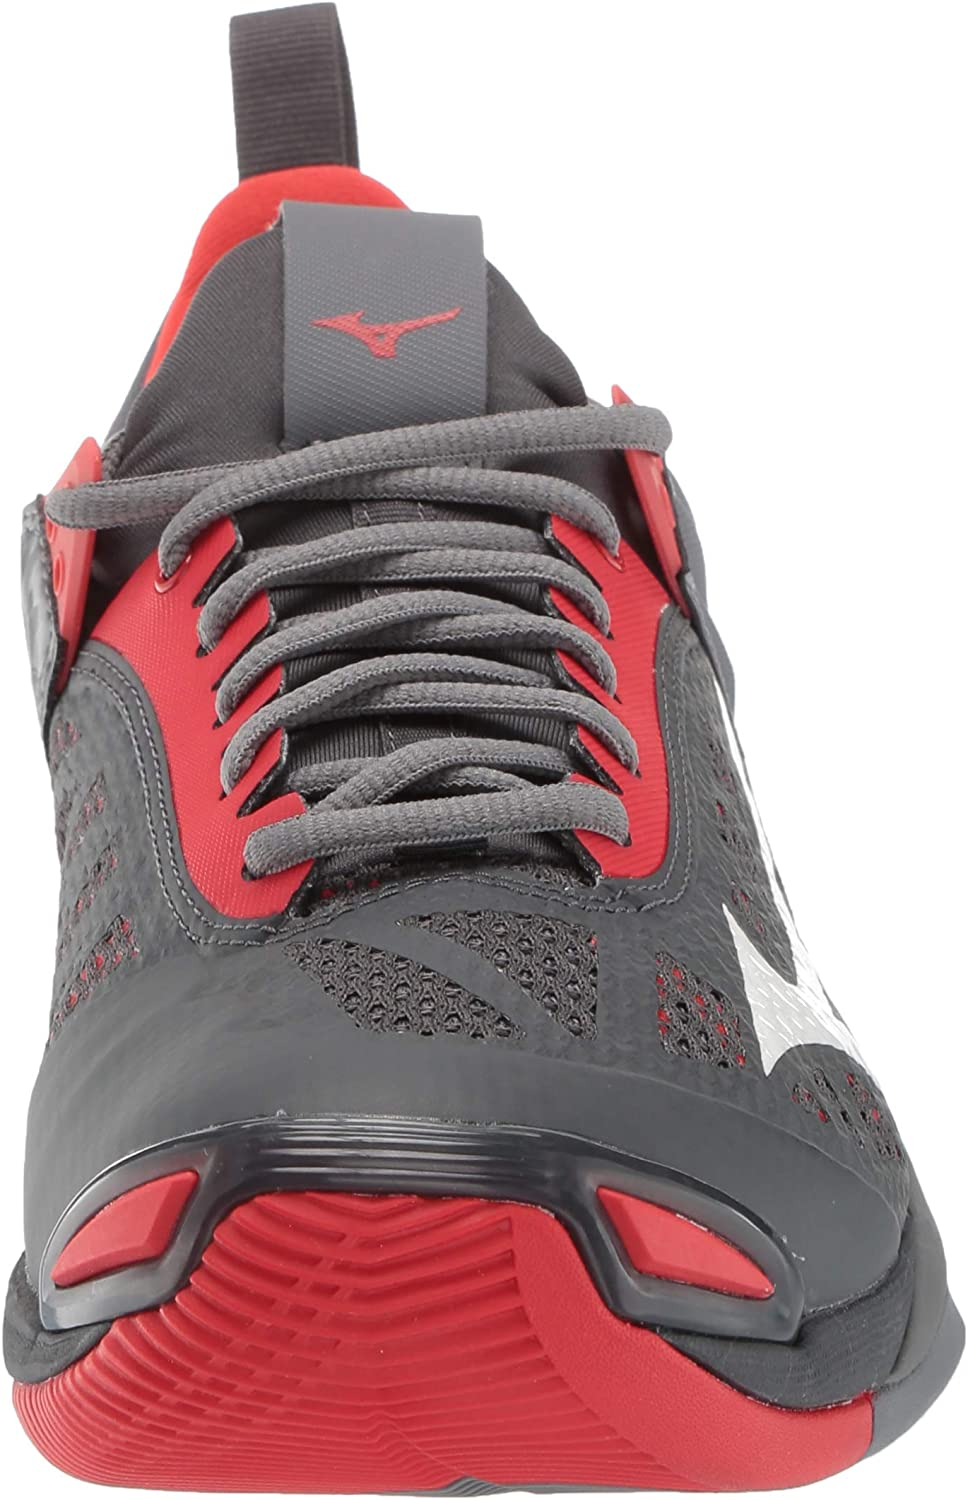 mizuno volleyball shoes second hand mexico price